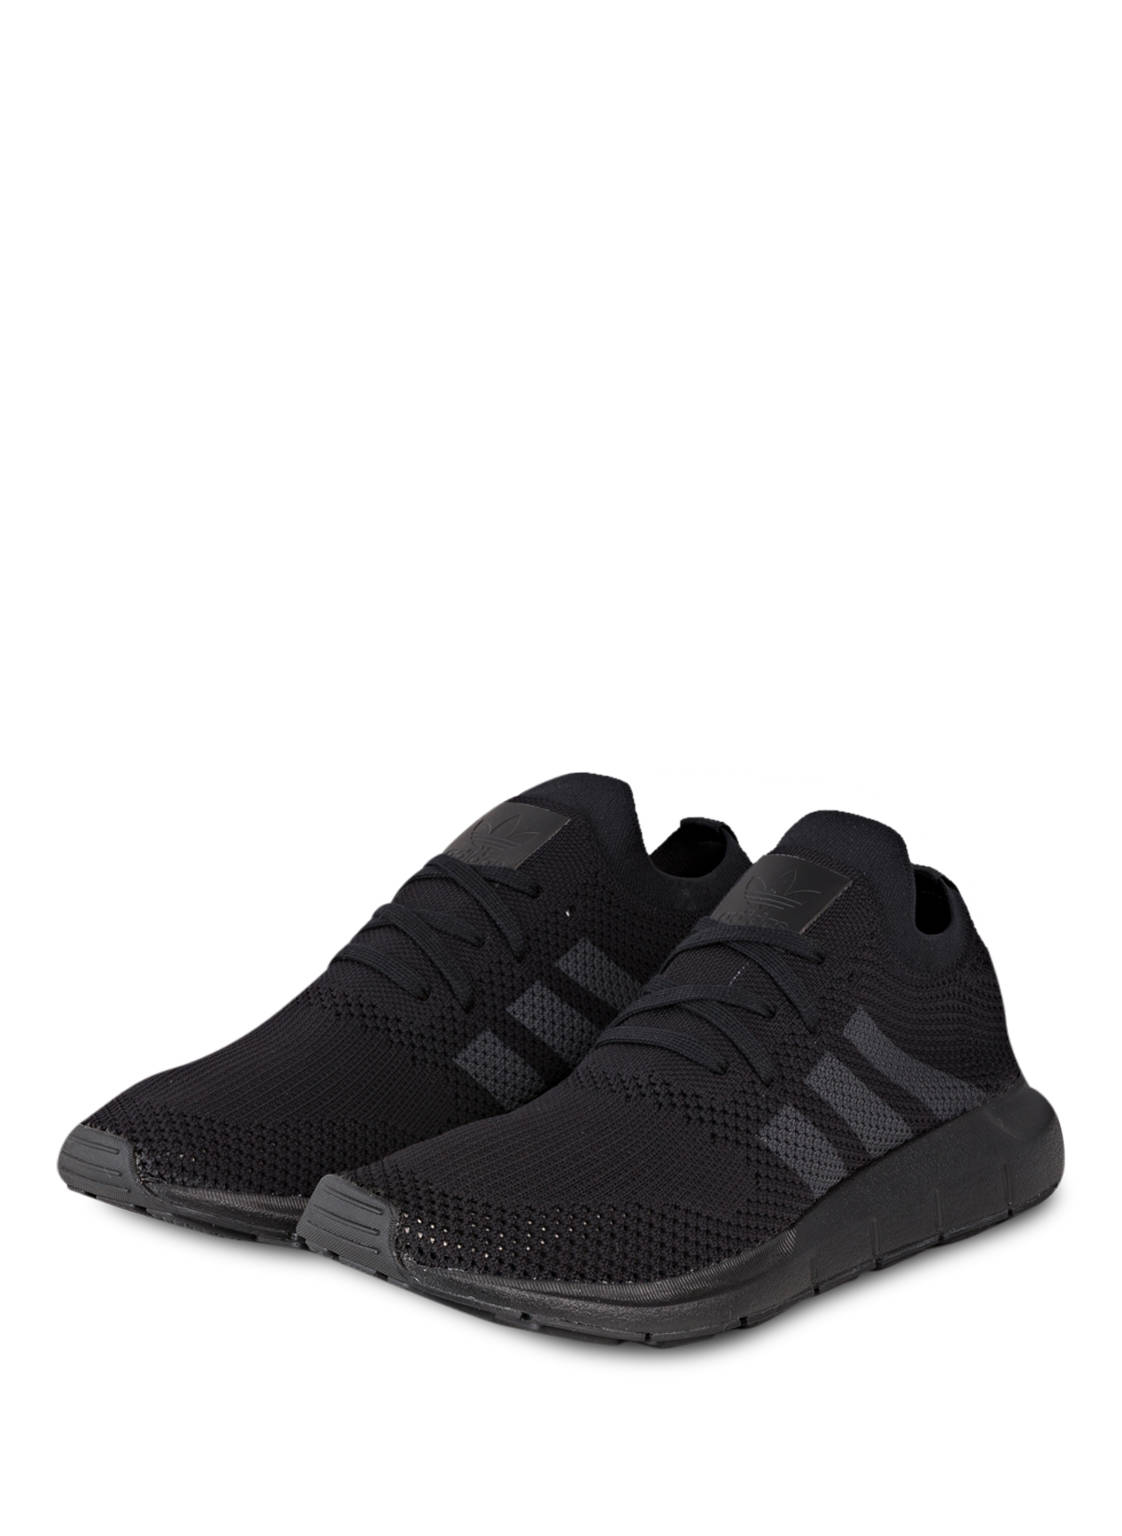 adidas Originals Sneaker SWIFT RUN PRIMEKNIT